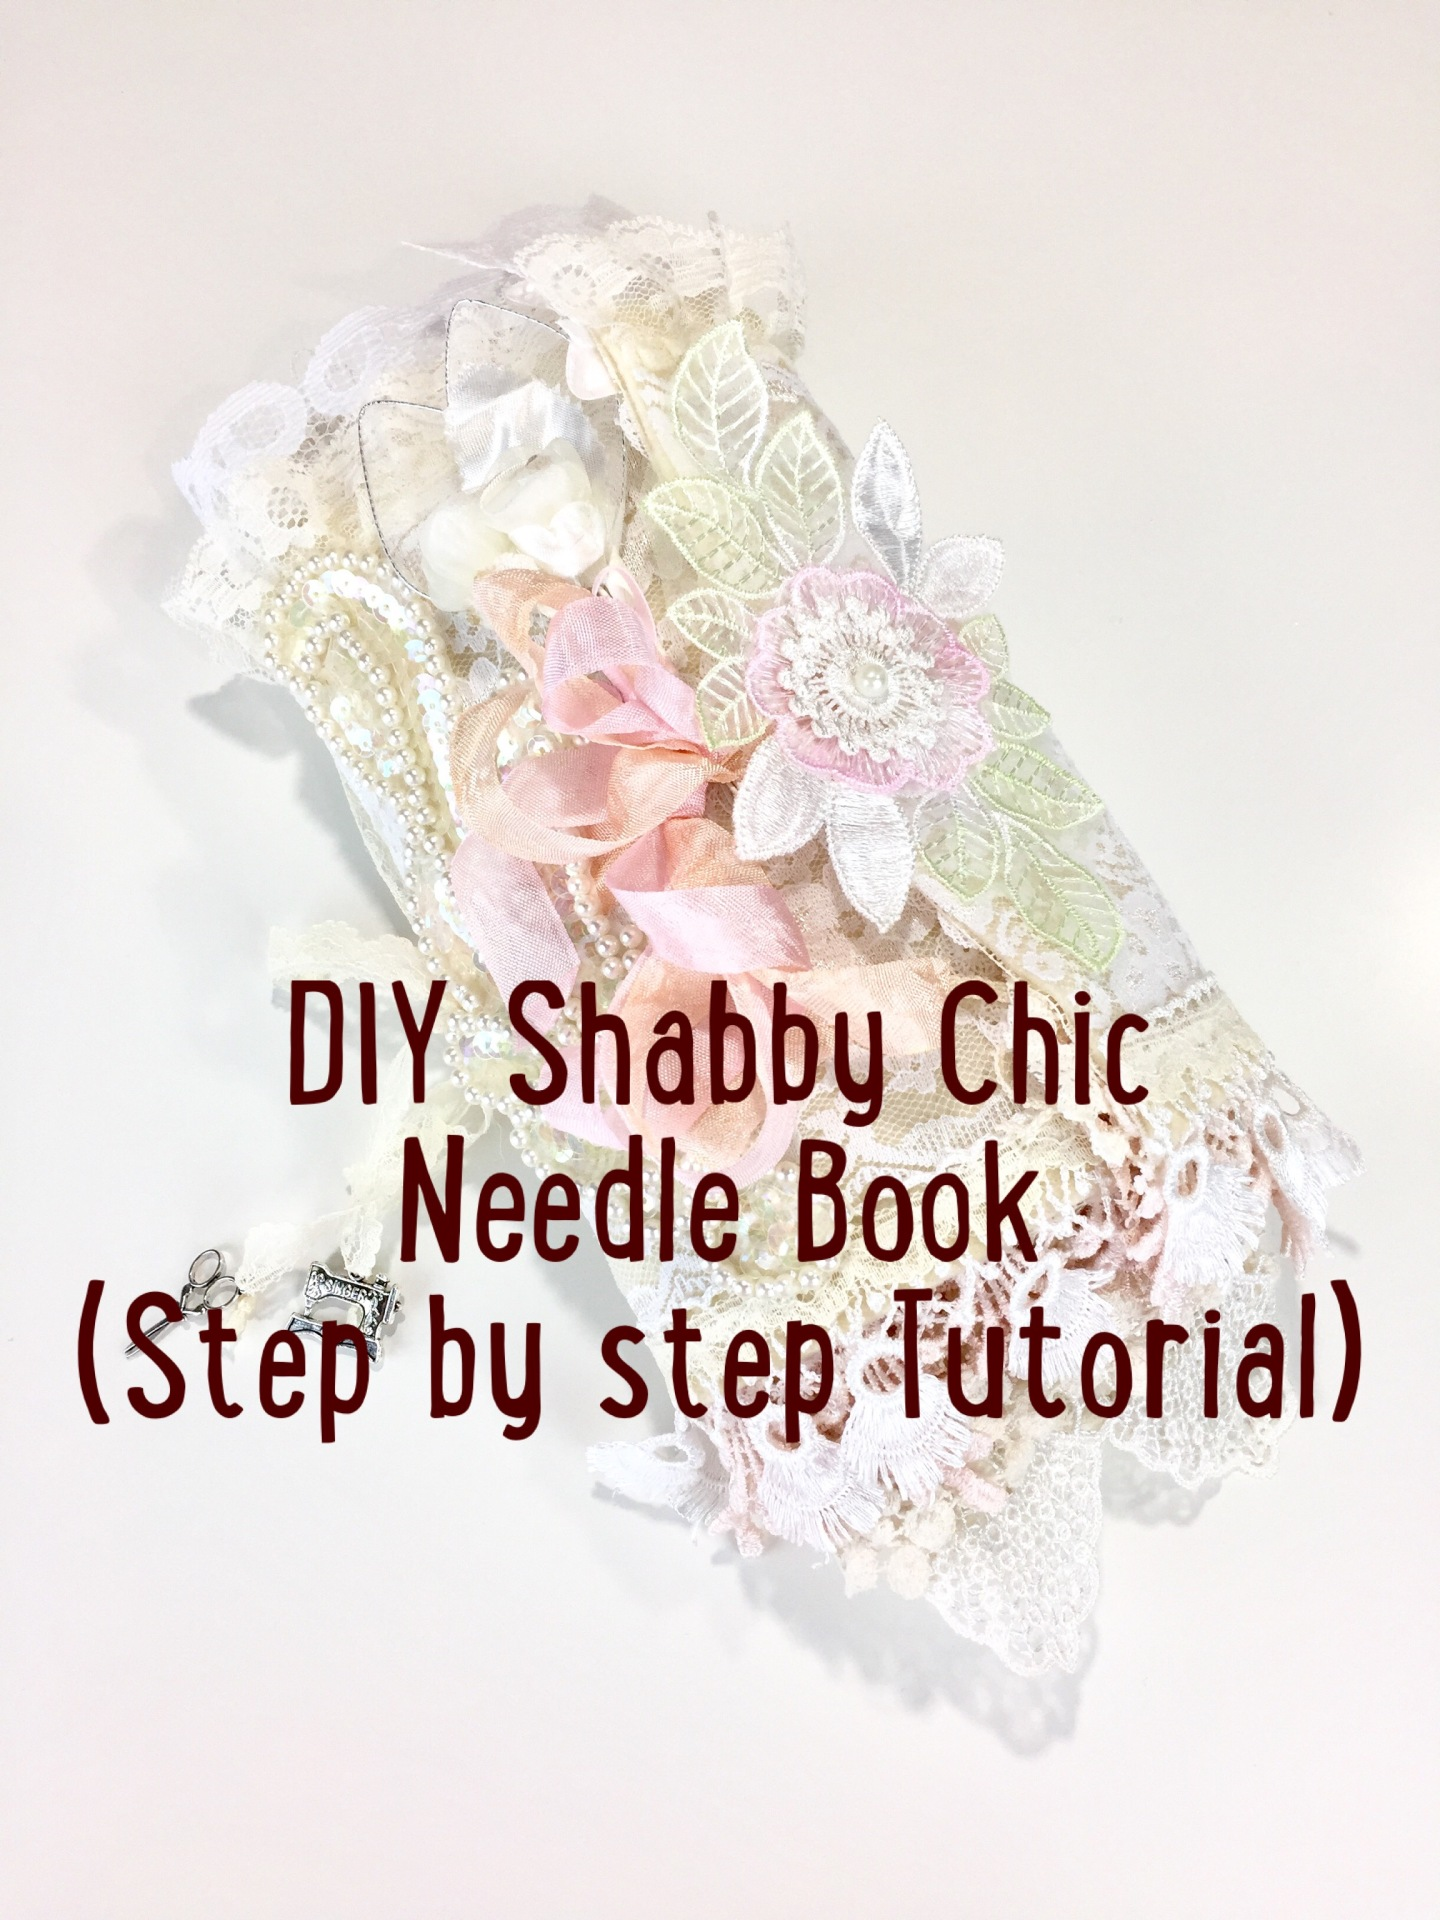 DIY Shabby Chic Needle Book